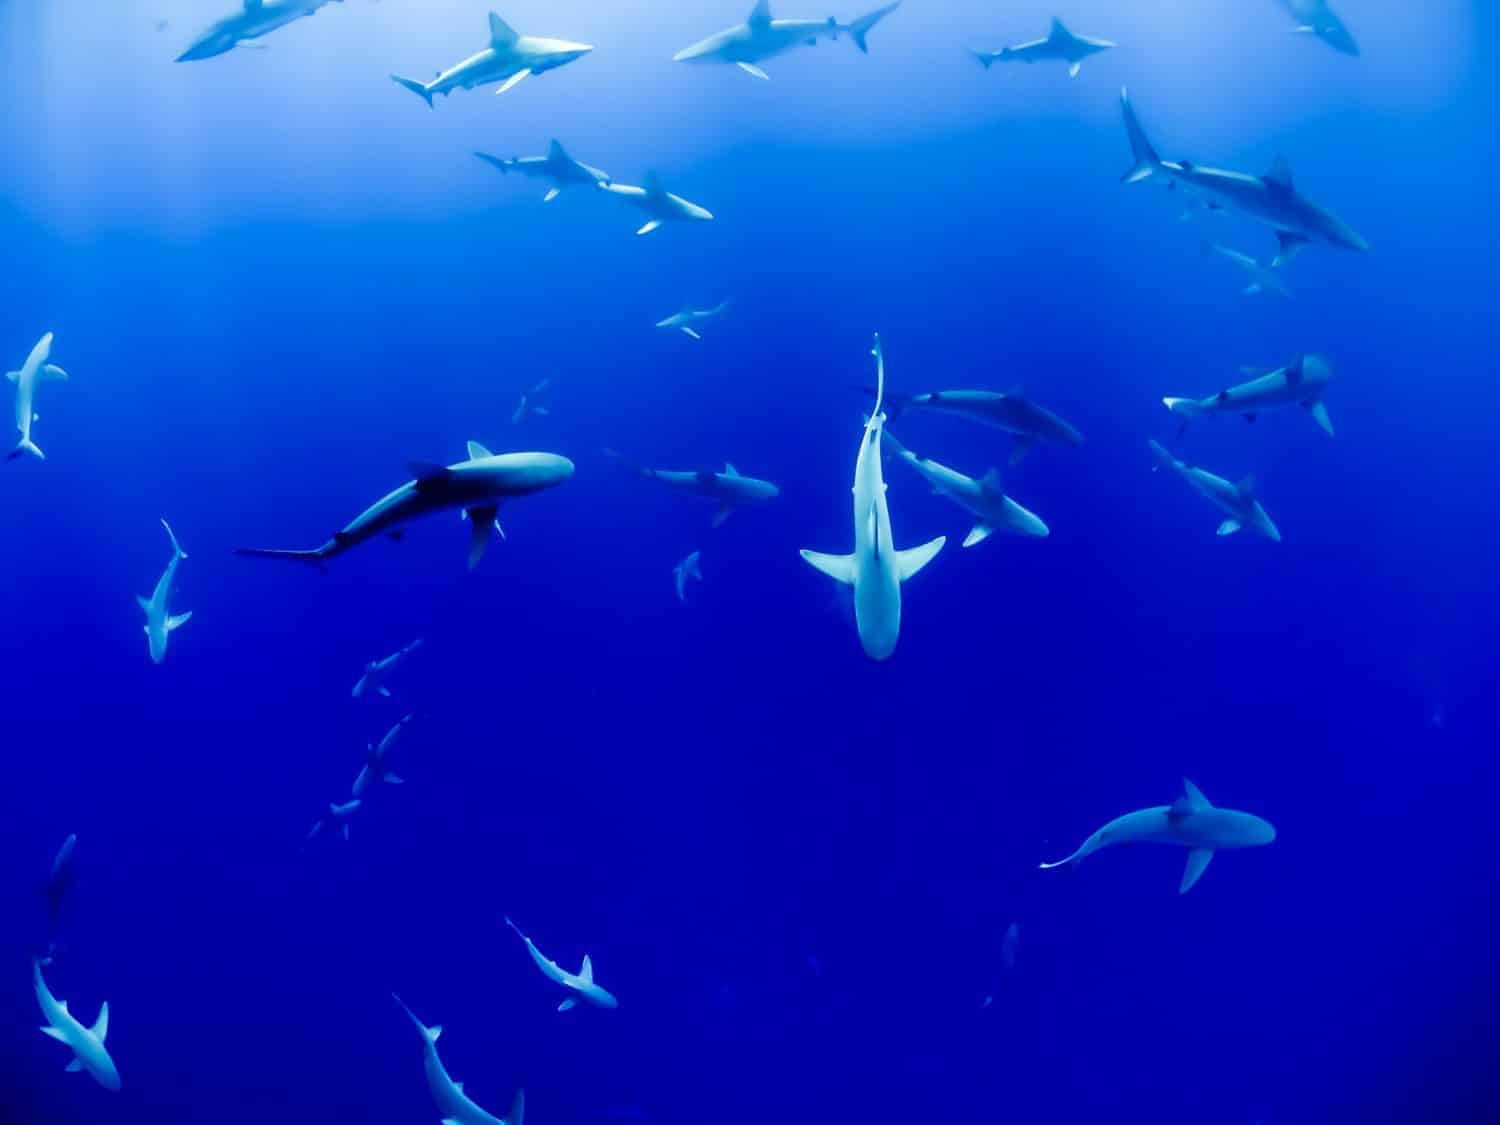 A group of sharks in deep blue water.